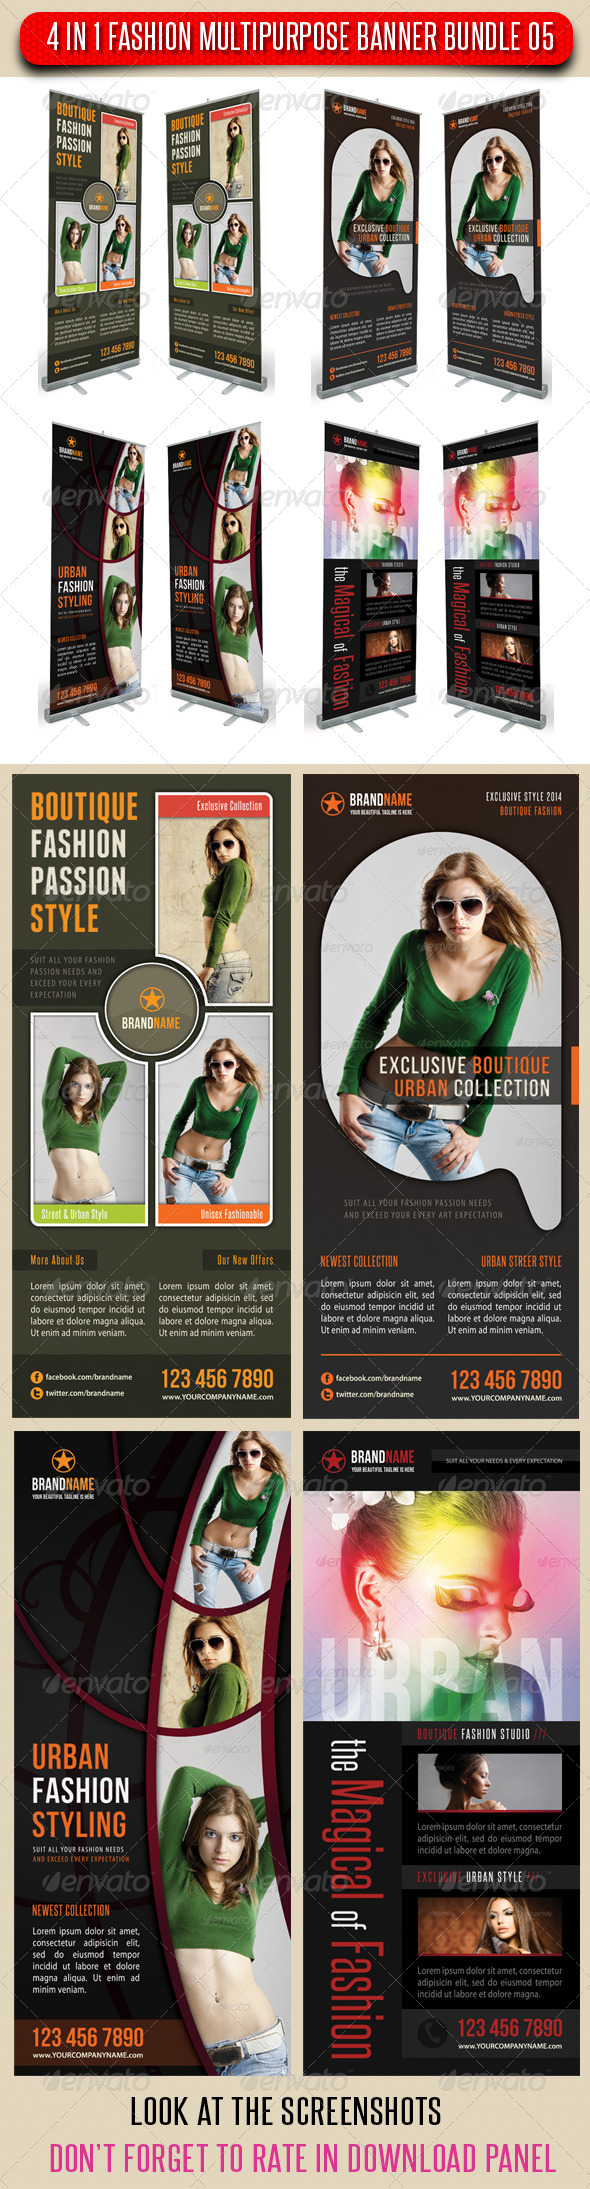 GraphicRiver 4 in 1 Fashion Multipurpose Banner Bundle 05 6727820